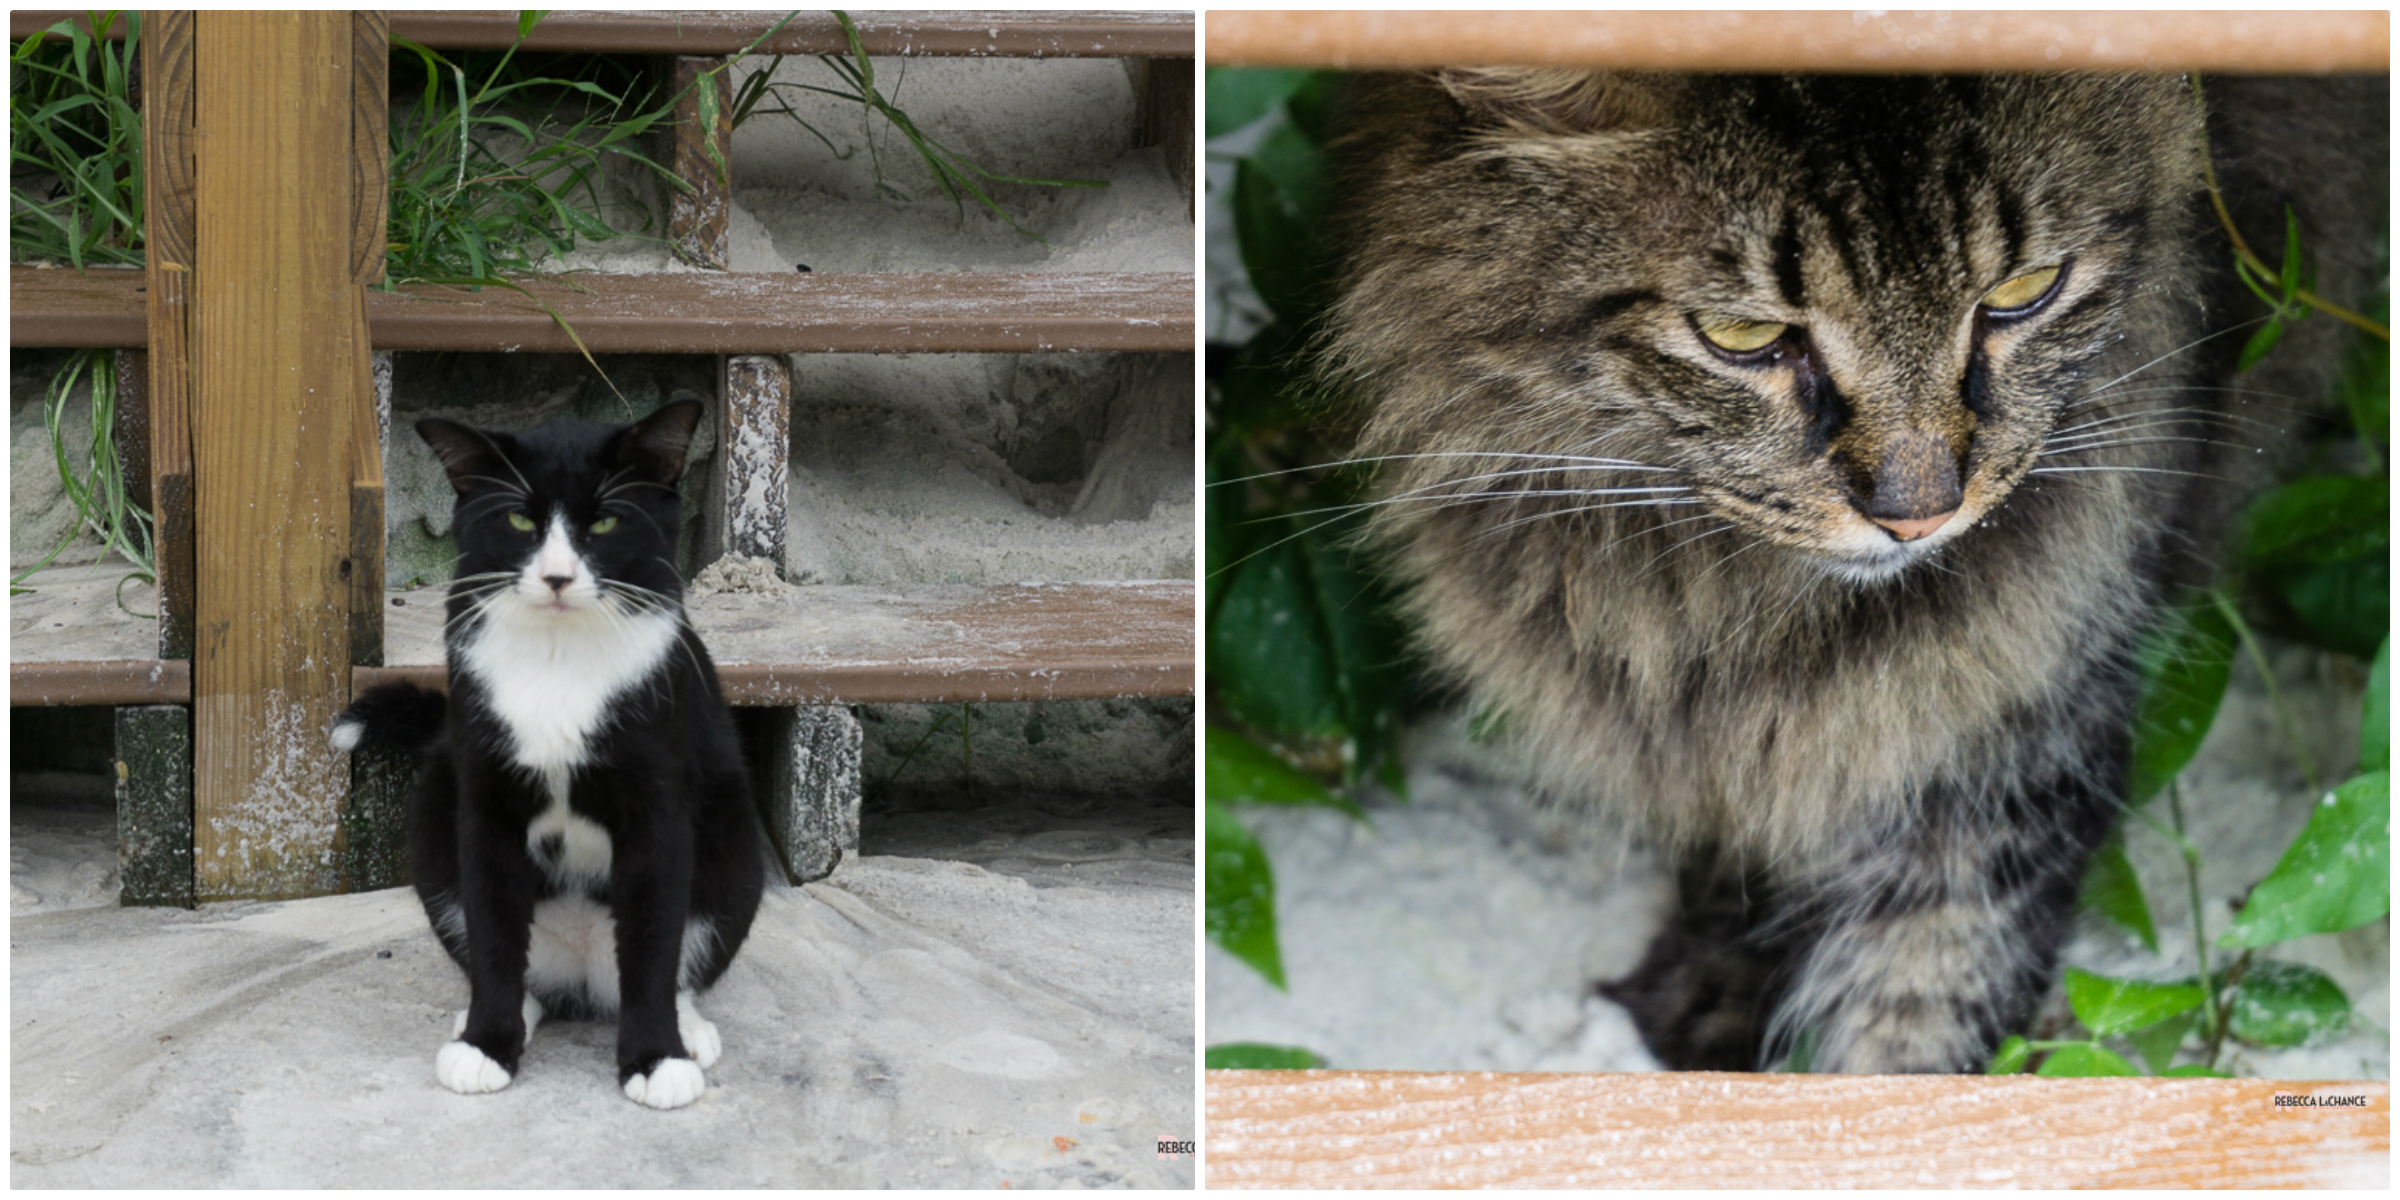 """""""Beach cats"""" (c) Rebecca LaChance, 2016, Panama CIty Beach, FL.  To the left we have """"the guardian of the stairs"""". Does anyone else hear Gandolf in their head, saying, """"You shall not pass!""""? To the right we have the invisible cat, as in """"you can't see me if I don't look at you."""" These fur buddies are part of the ambience. The personnel leave food and water out for them and a few others."""